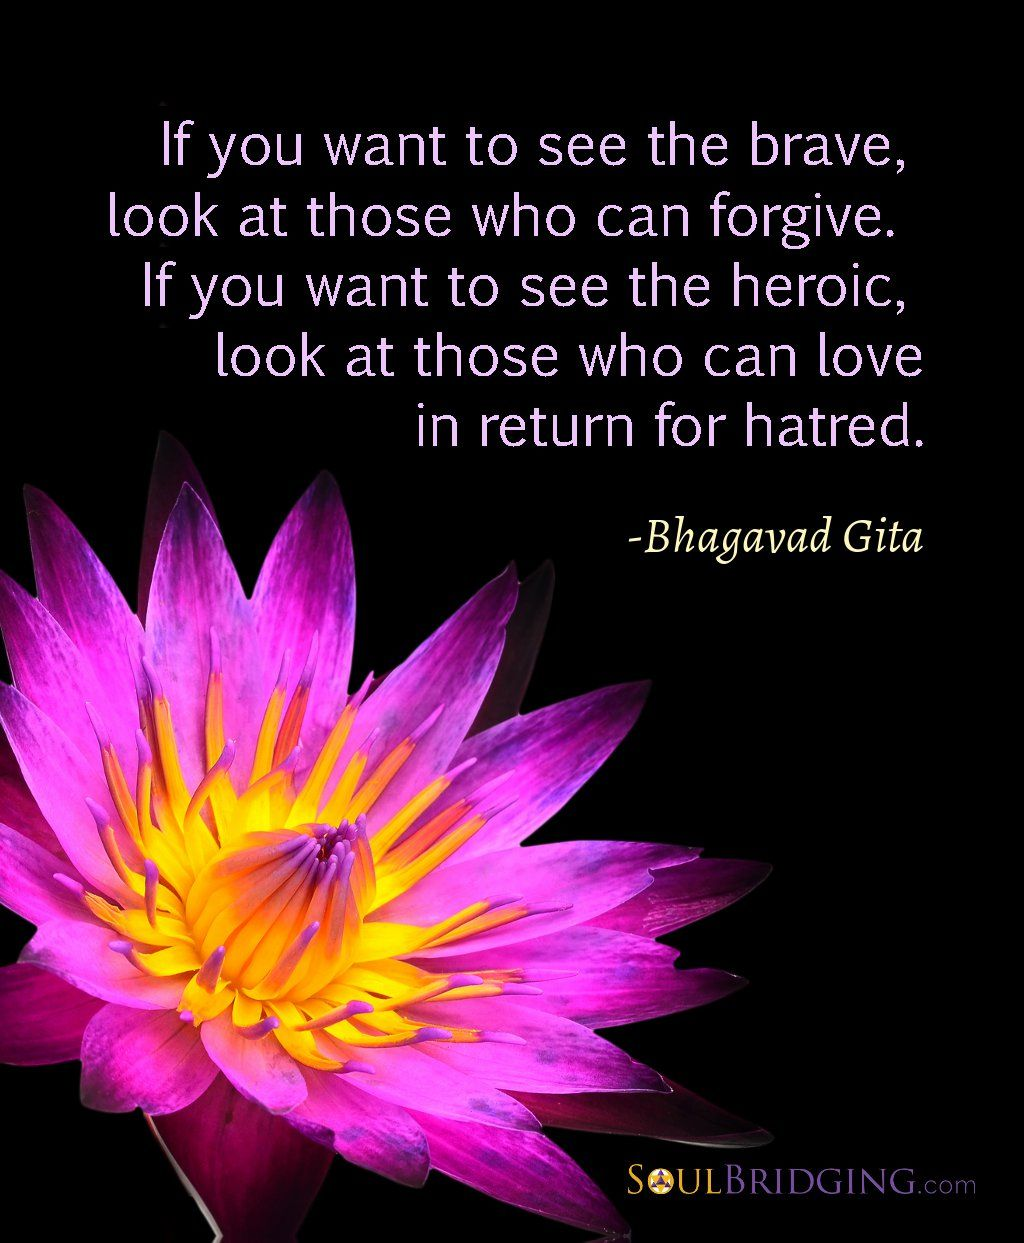 Quote About Forgiveness If You Want To See The Brave Look At